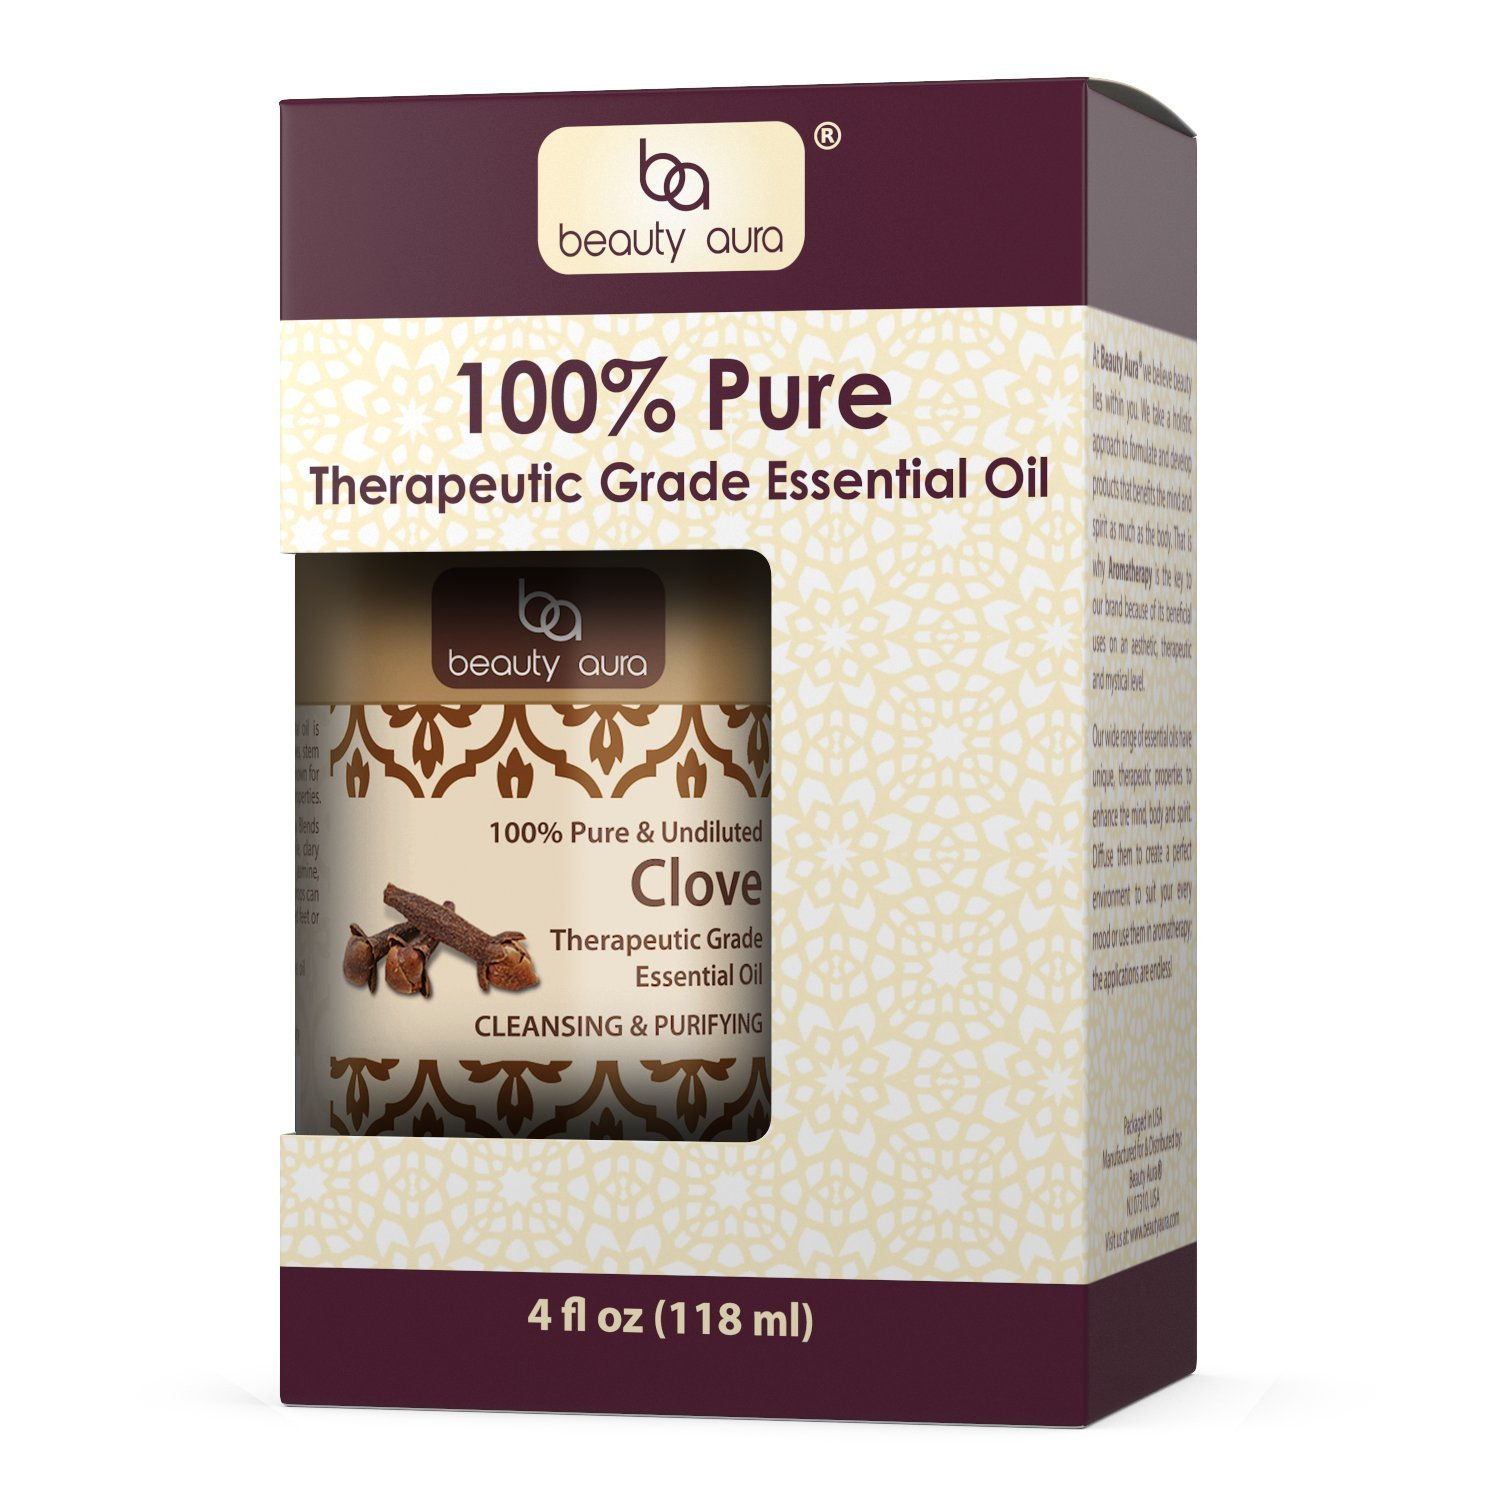 Beauty Aura Clove Essential Oil * 4 Oz * Pure Therapeutic Grade Cloves oil Aromatherapy, Hair Care, Skin Care & Natural Remedies by Beauty Aura (Image #4)